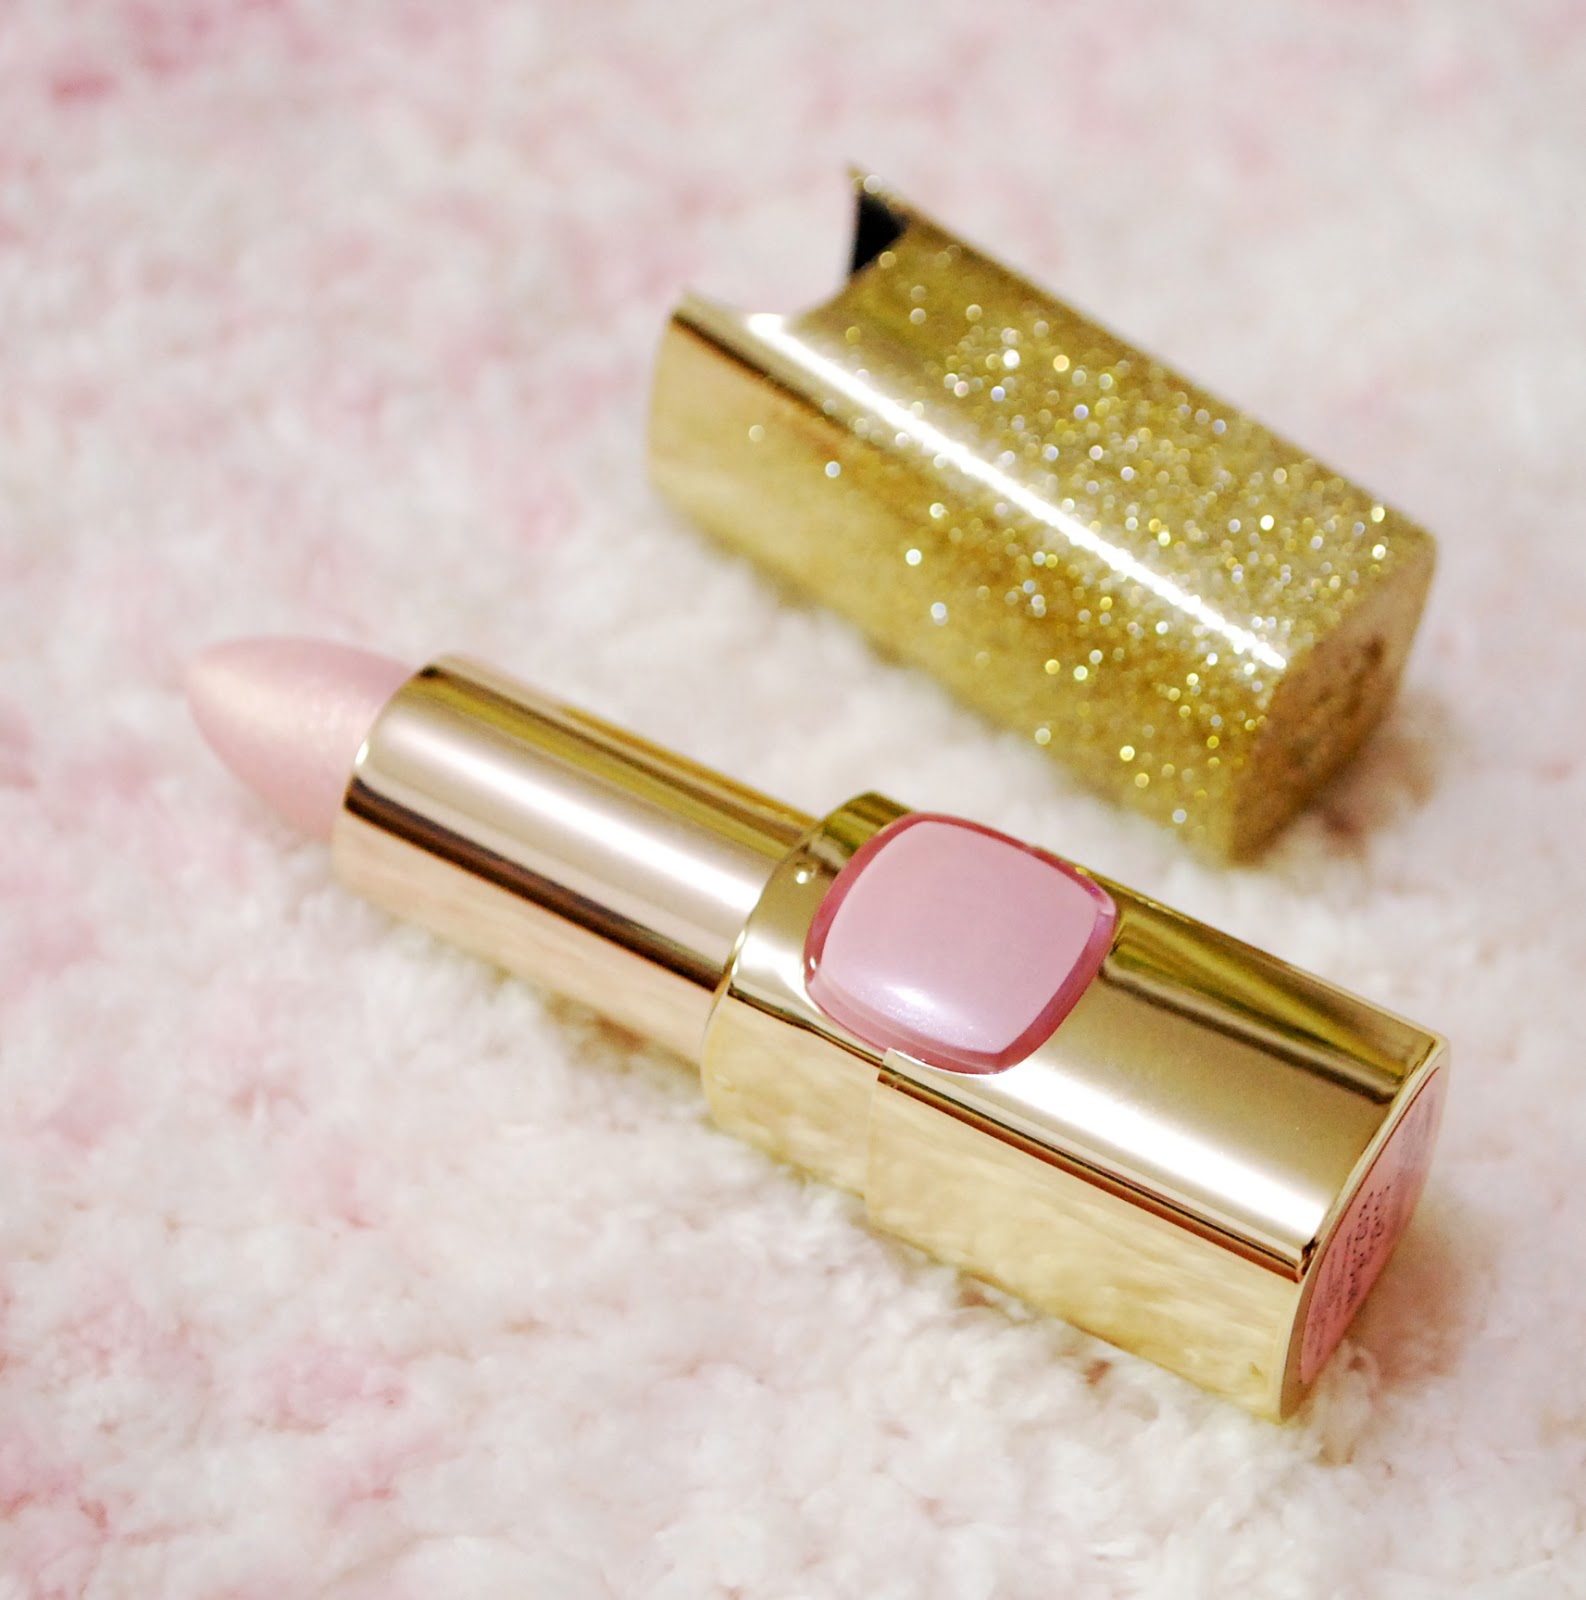 Colour Riche Gold Addiction Lipstick by L'Oreal #14